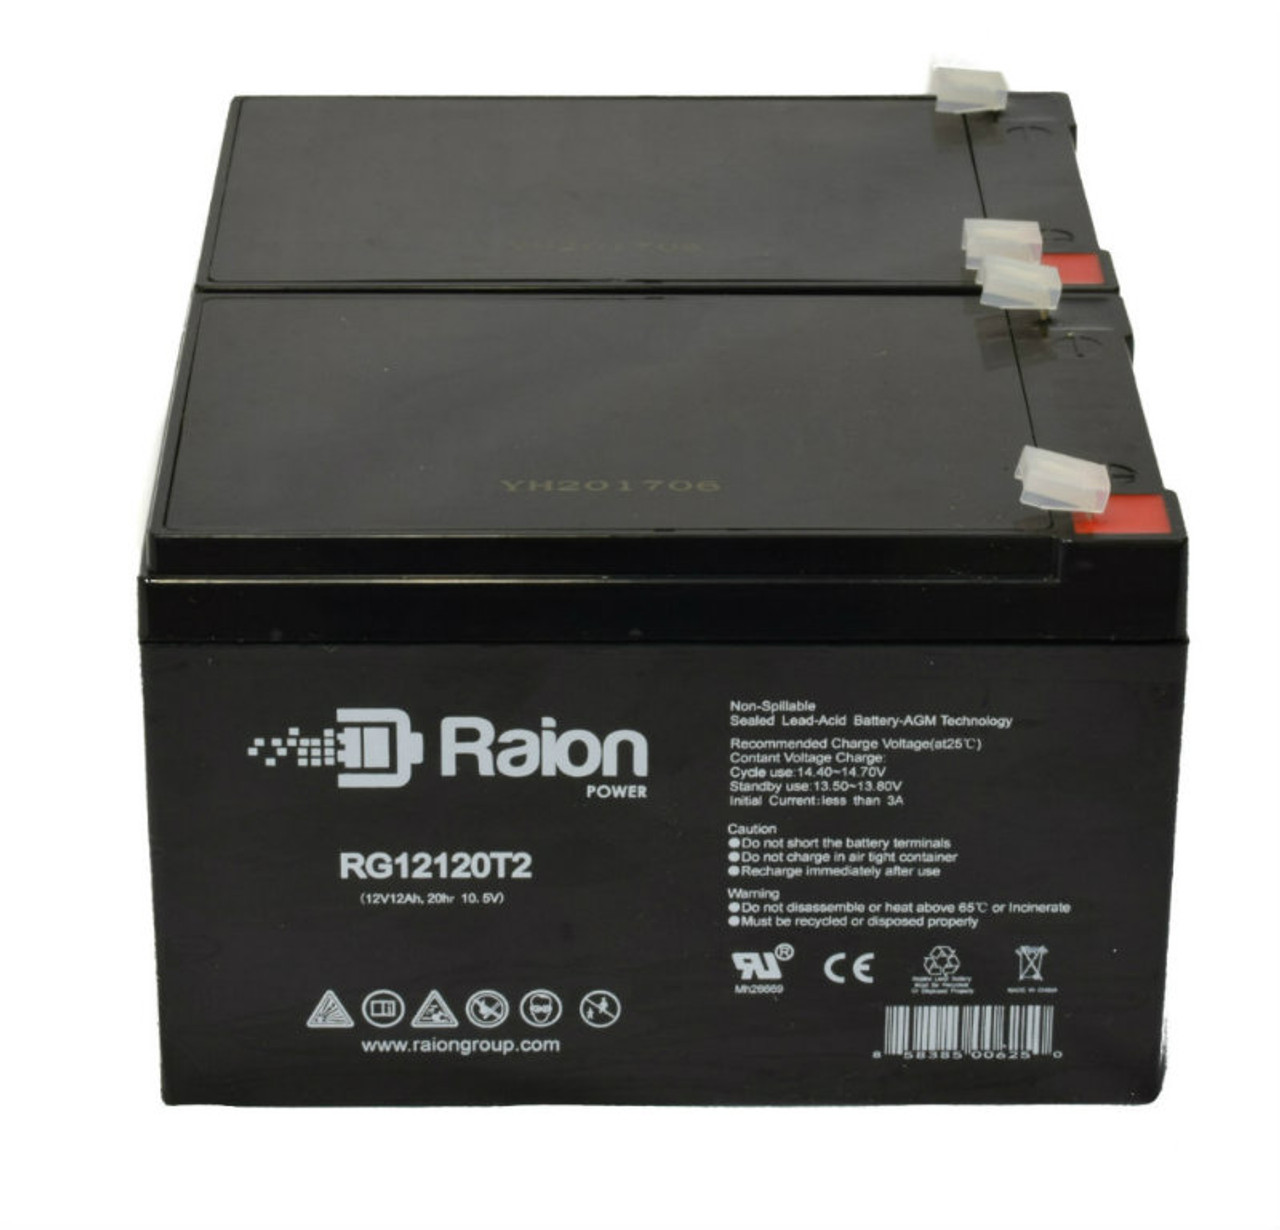 Raion Power RG12120T2 Replacement Battery Set for Electric Mobility Ultralite 355XL Mobility Scooter - 2 Pack